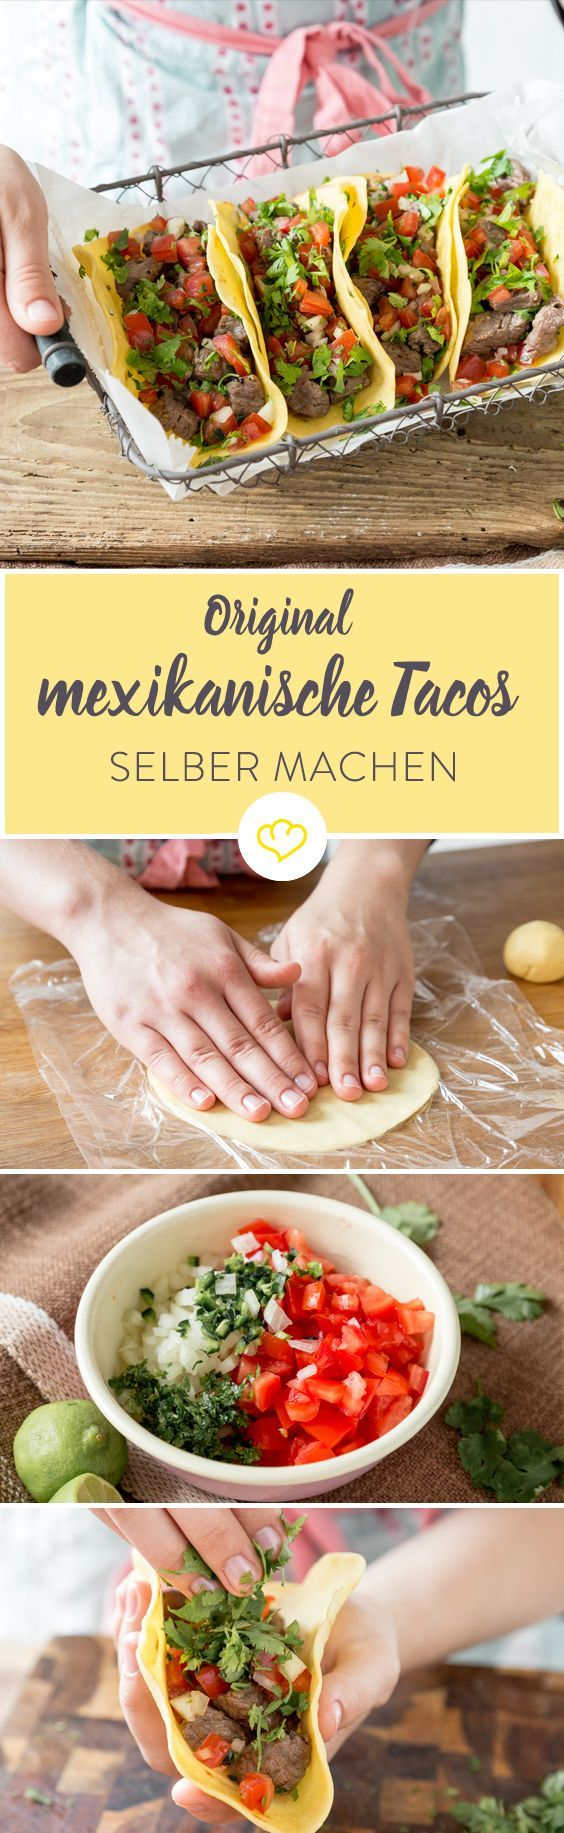 Photo of Mexican tortillas – make tacos and salsa yourself